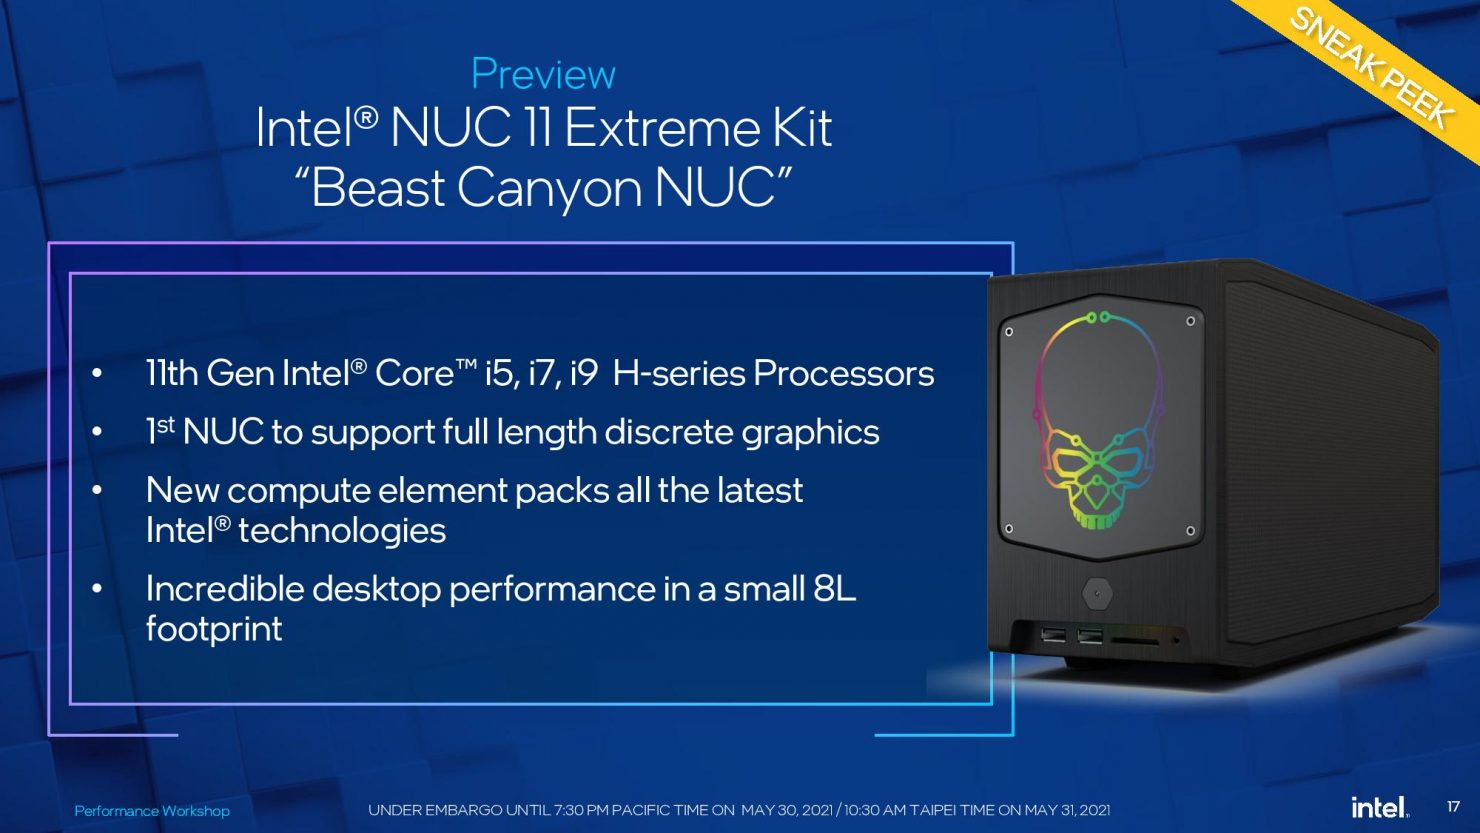 intel-announces-beast-canyon-nuc-–-8-core-10nm-sfe-'tiger-lake'-cpu-and-the-biggest-gpu-you-can-get